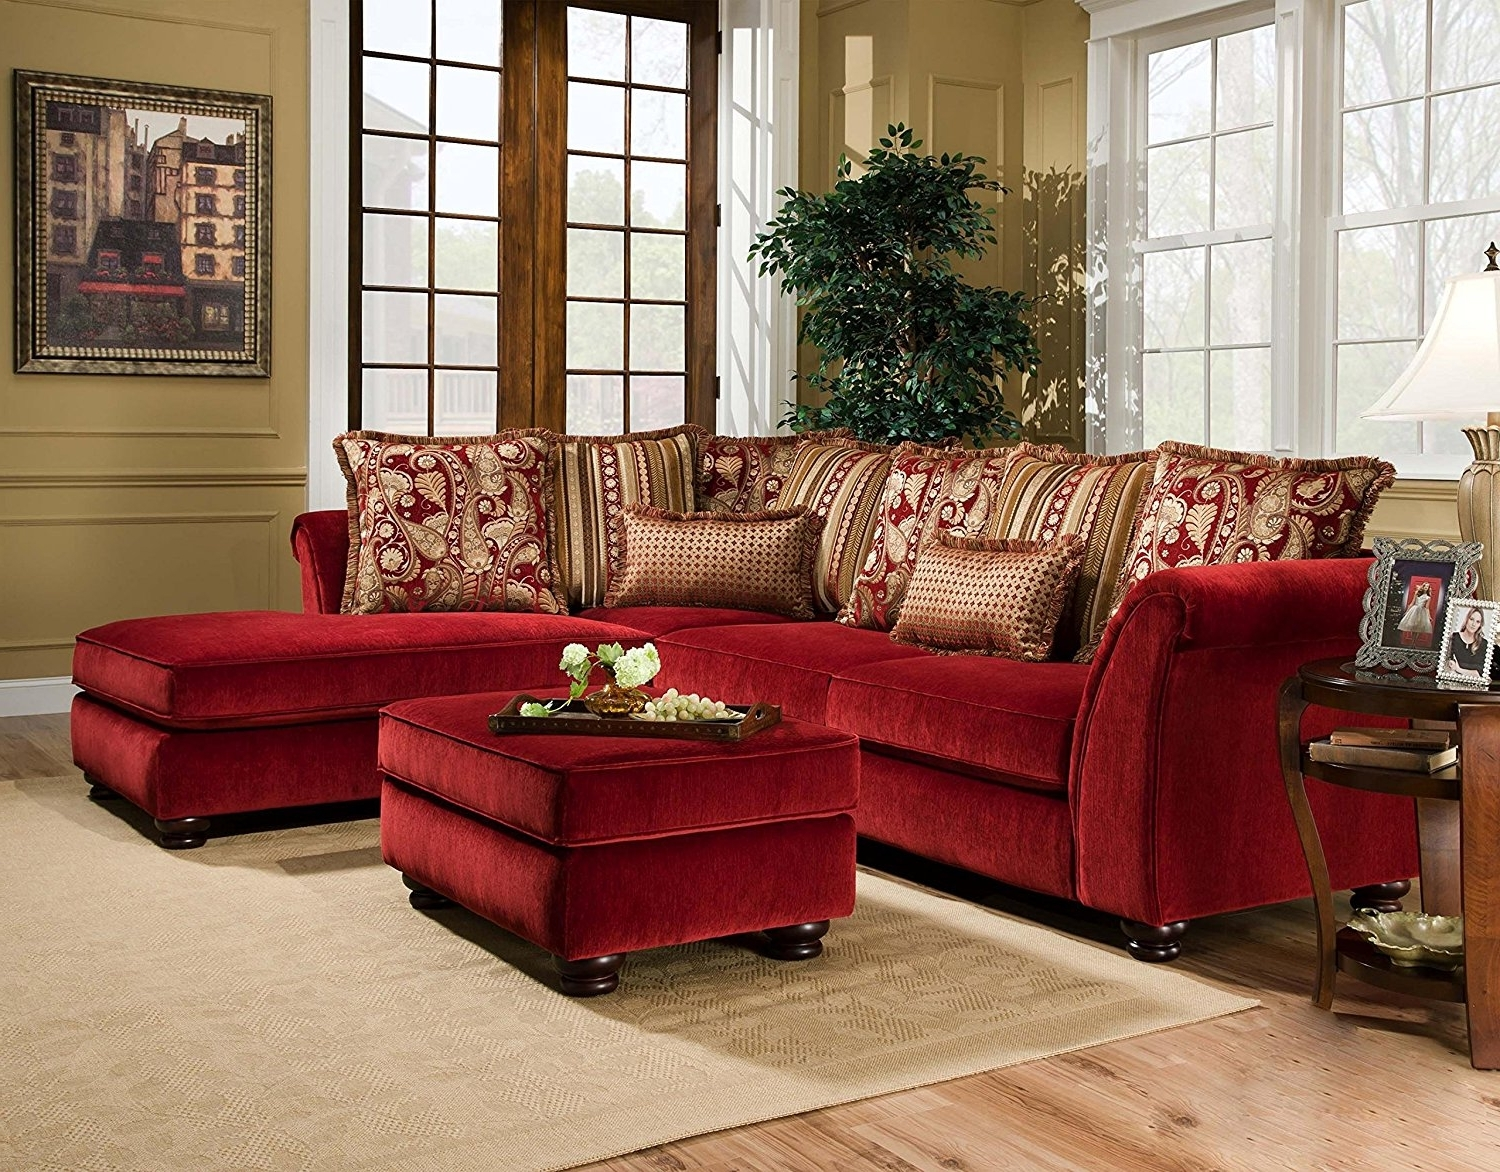 Red Sectional Sofas With Chaise Within Fashionable Amazon: Chelsea Home Furniture Alexandria 2 Piece Sectional (View 13 of 15)